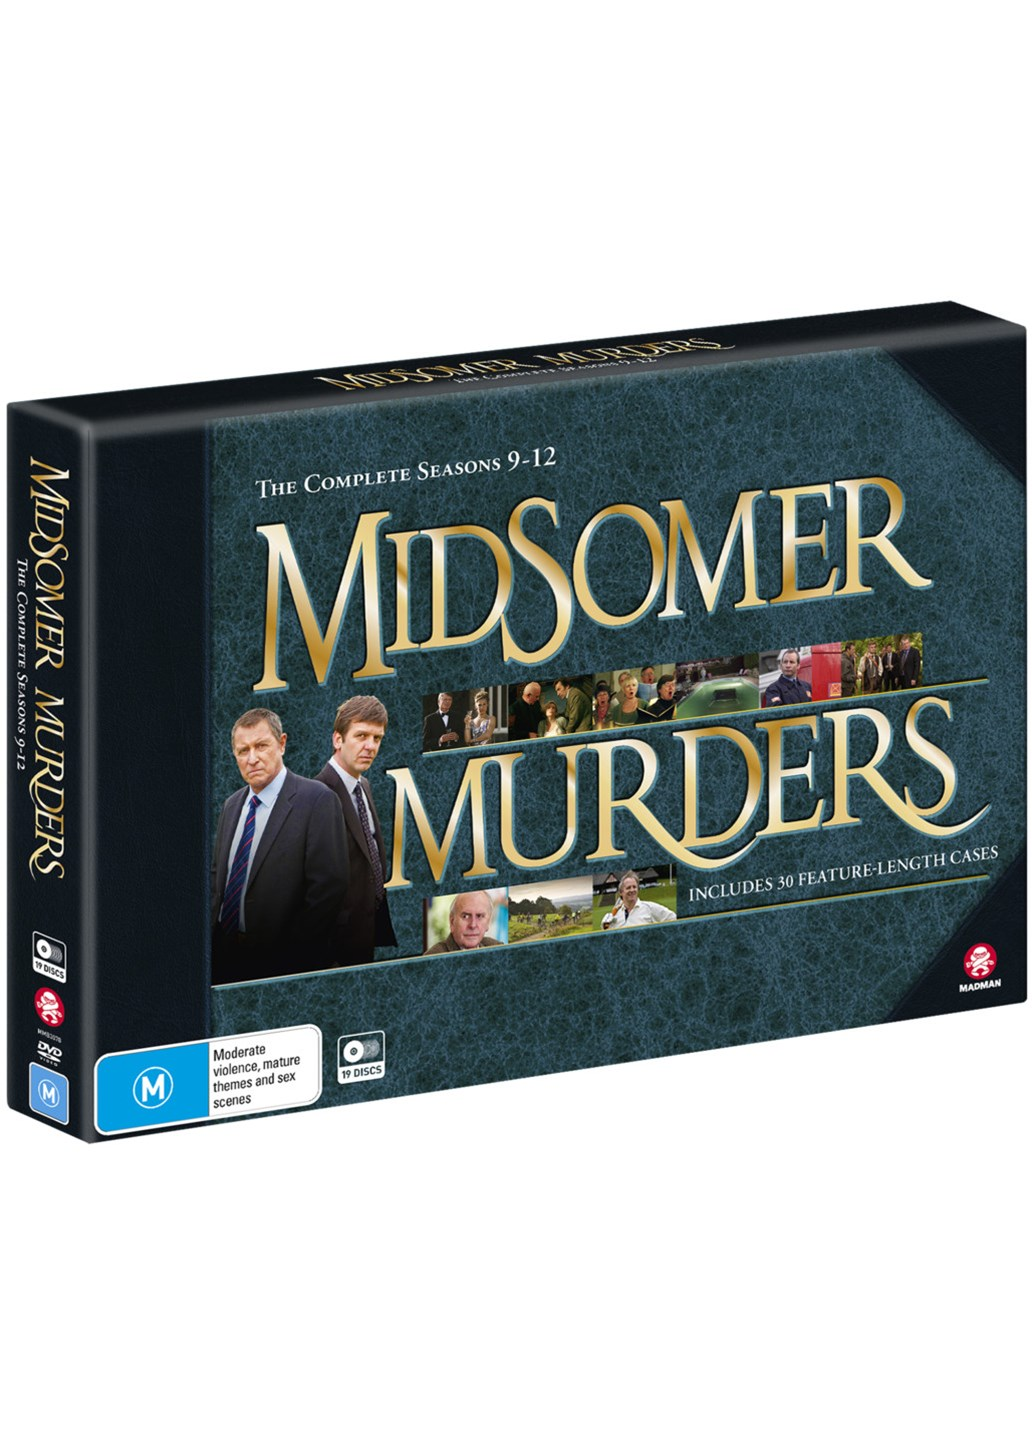 Midsomer Murders: Season 9 - 12 Collection (Limited Edition)